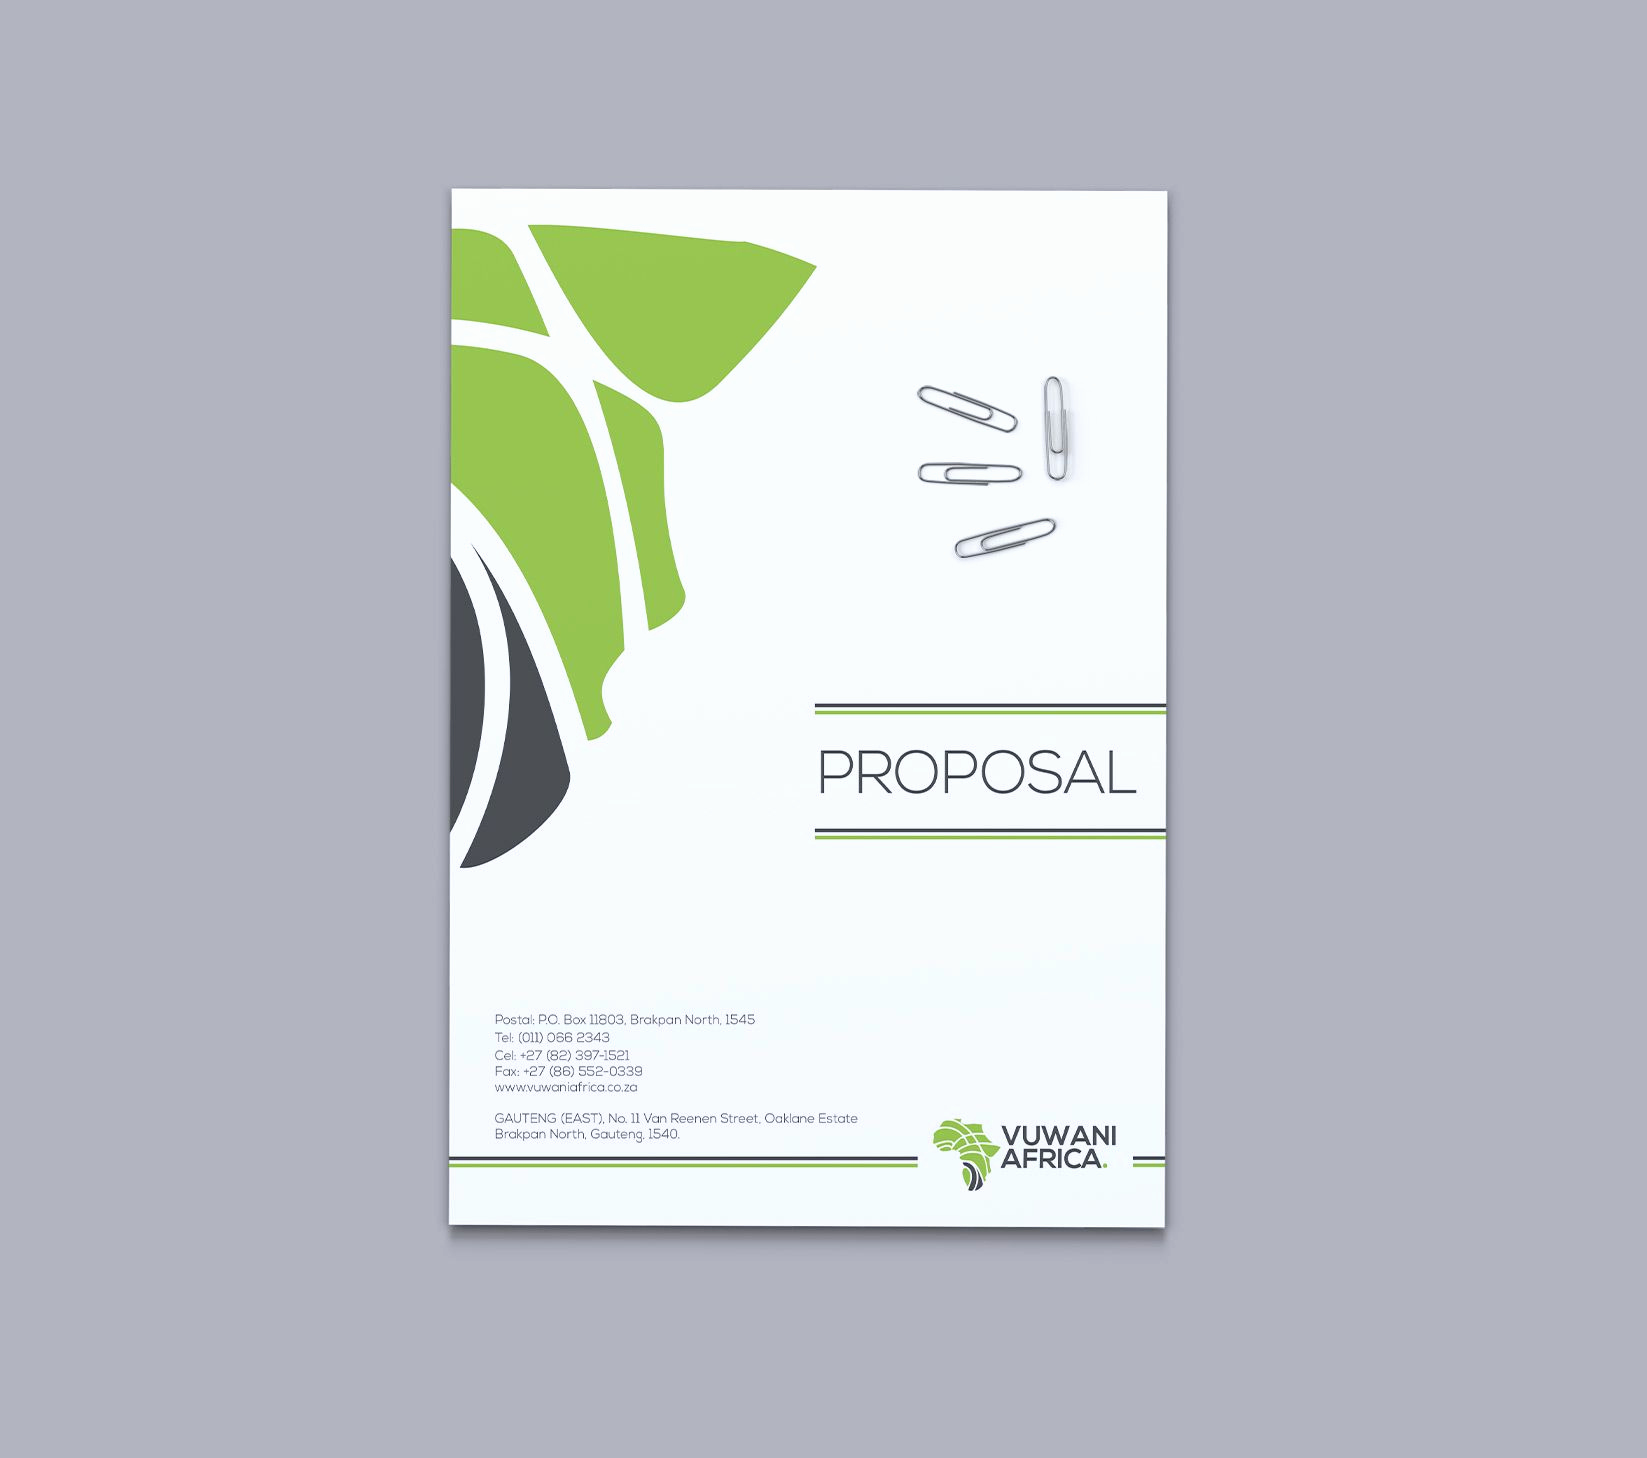 Web Design Proposal Template Best Of Proposal Cover Designs Google Search